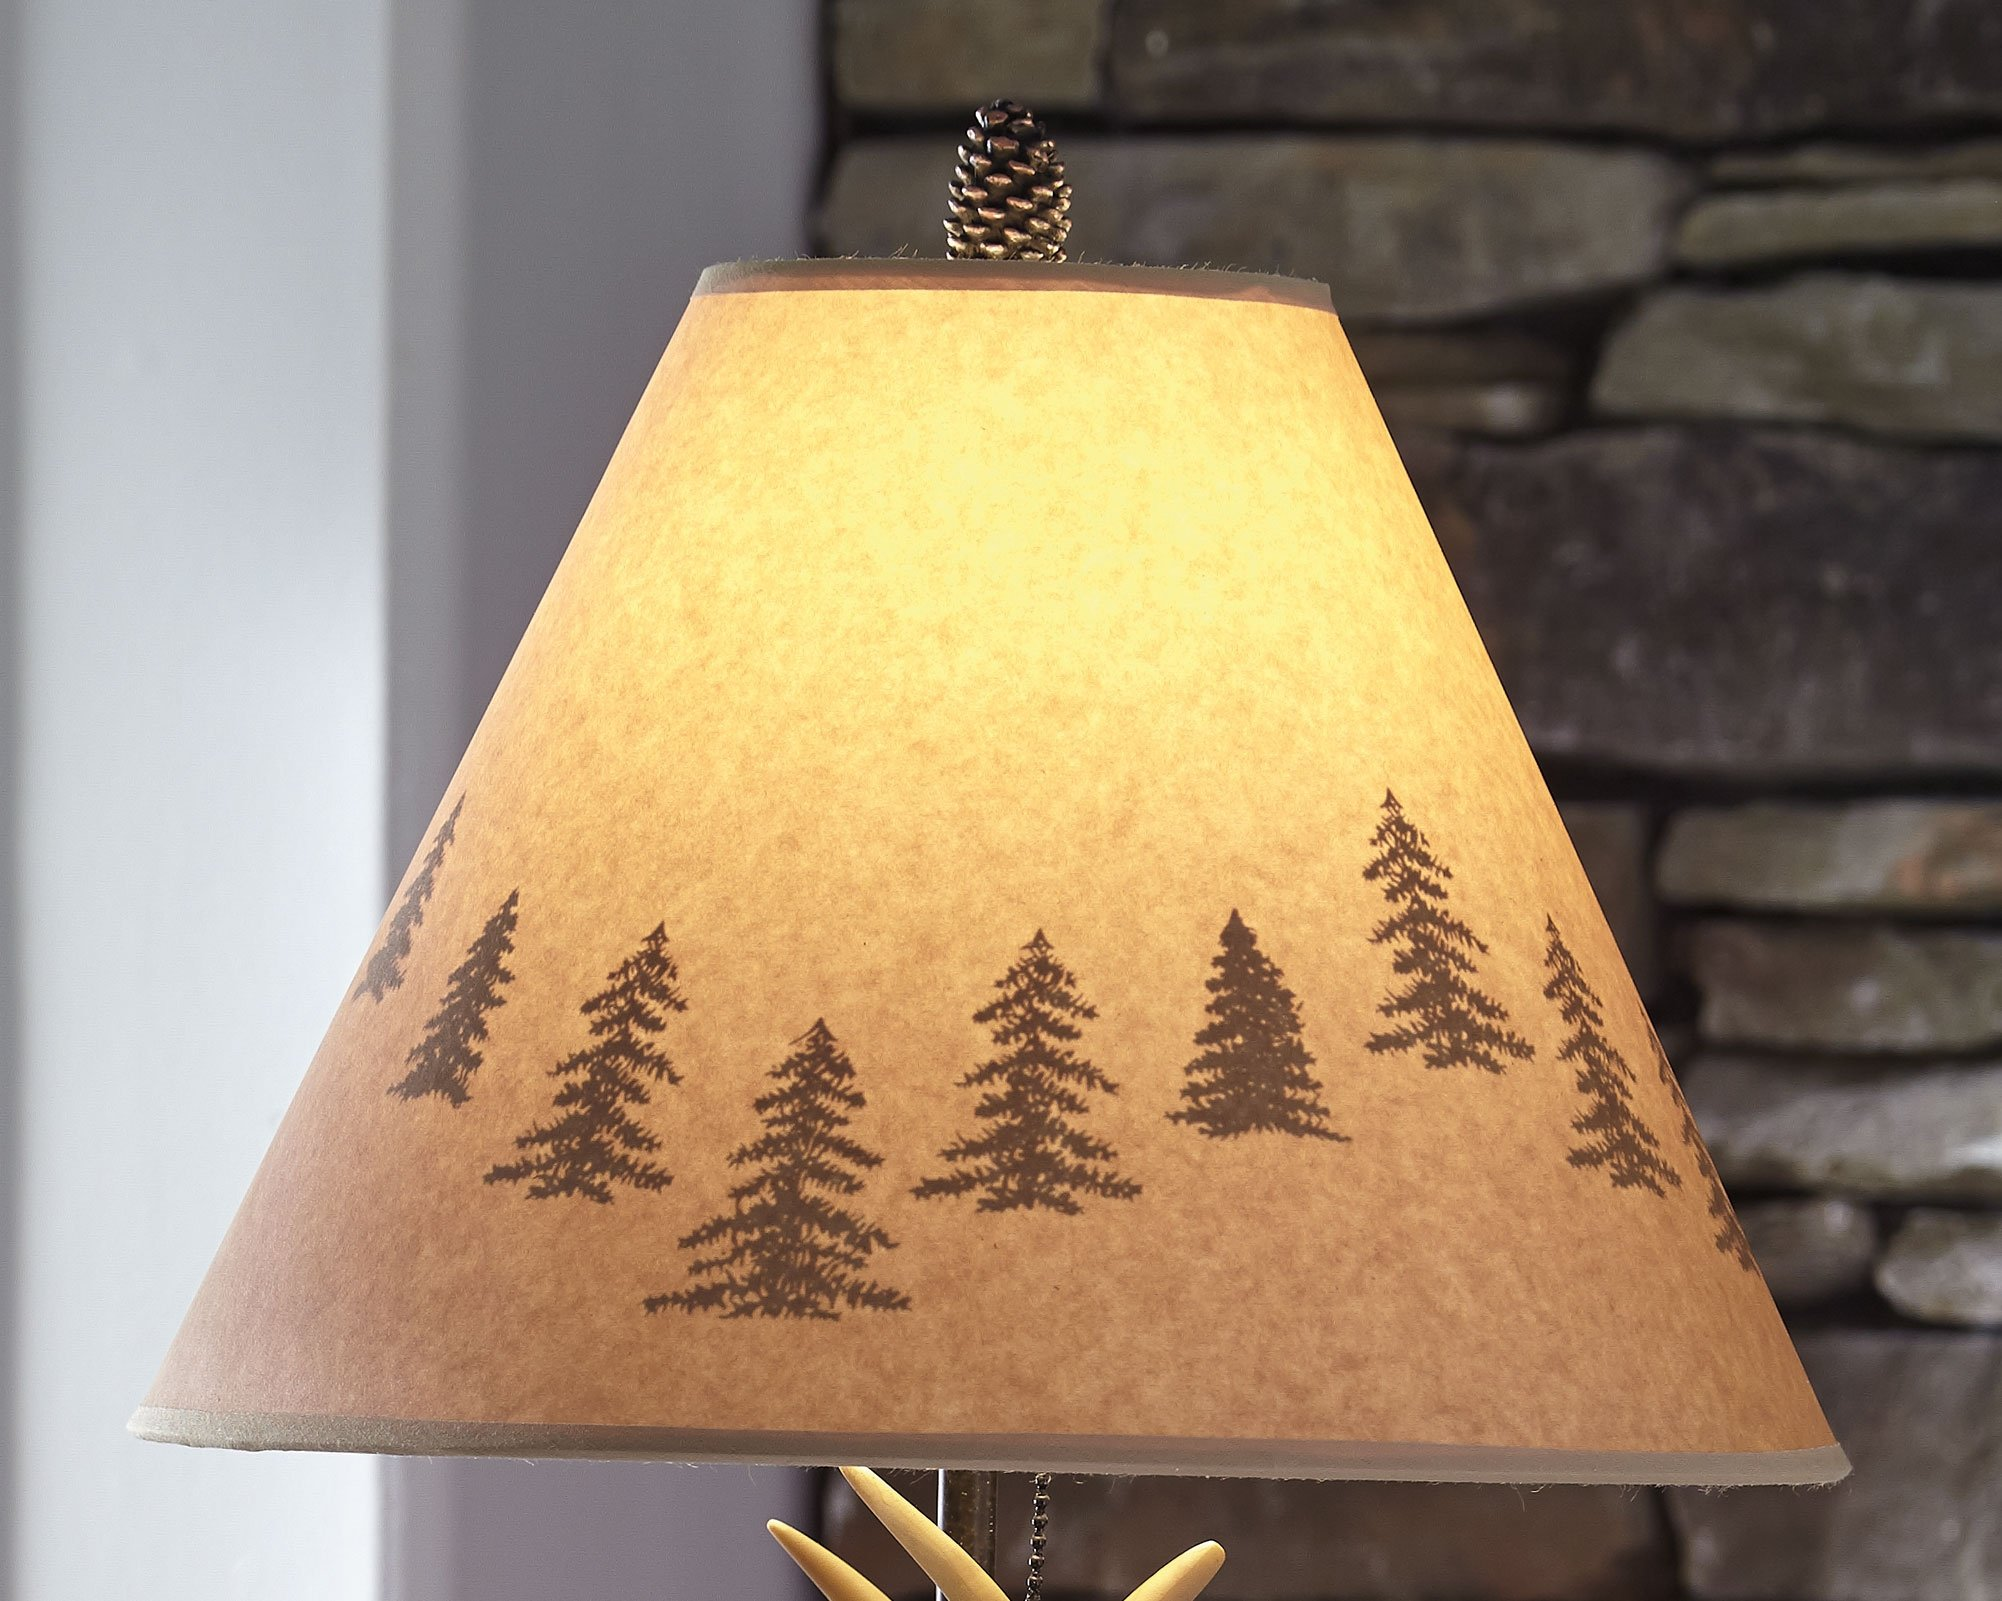 Ashley Furniture Signature Design - Derek Antler Table Lamps - Mountain Style Shades - Set of 2 - Natural Finish by Signature Design by Ashley (Image #4)